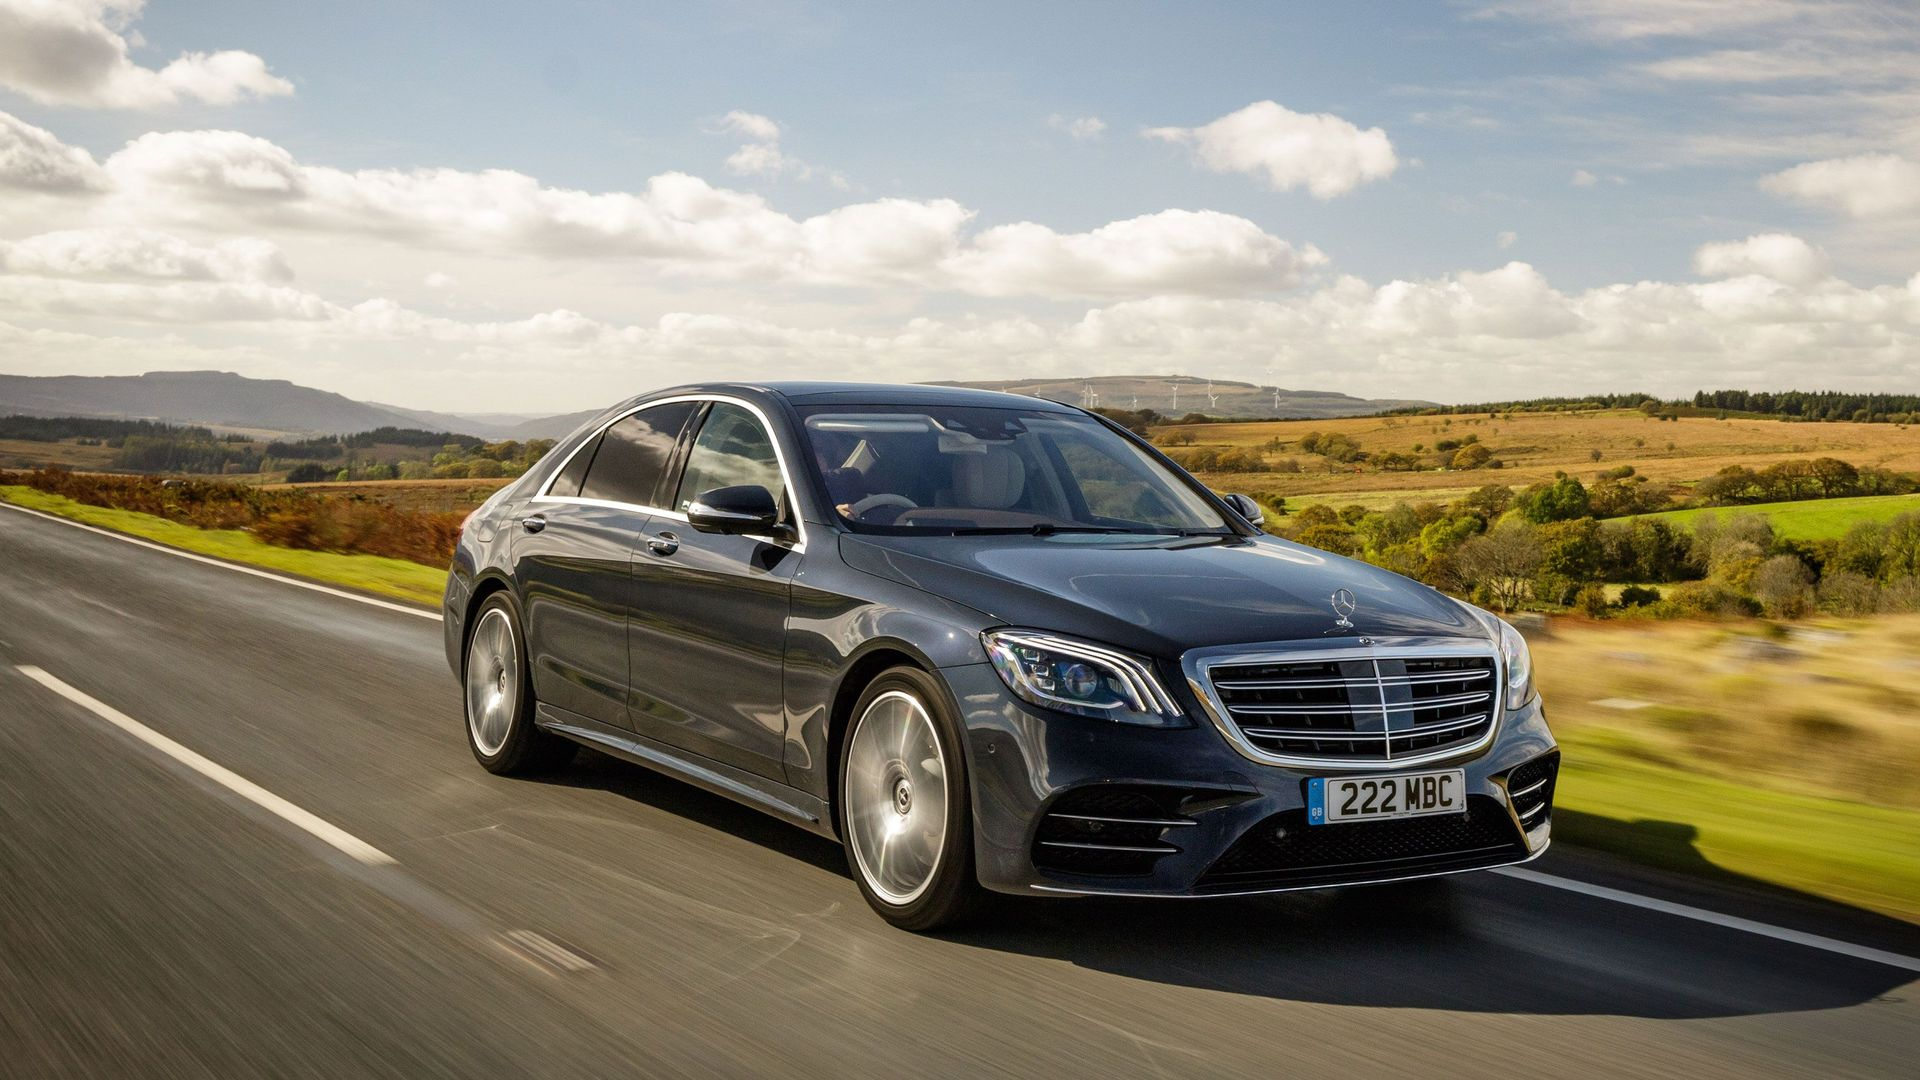 Mercedes-Benz S Class Grand Edition image